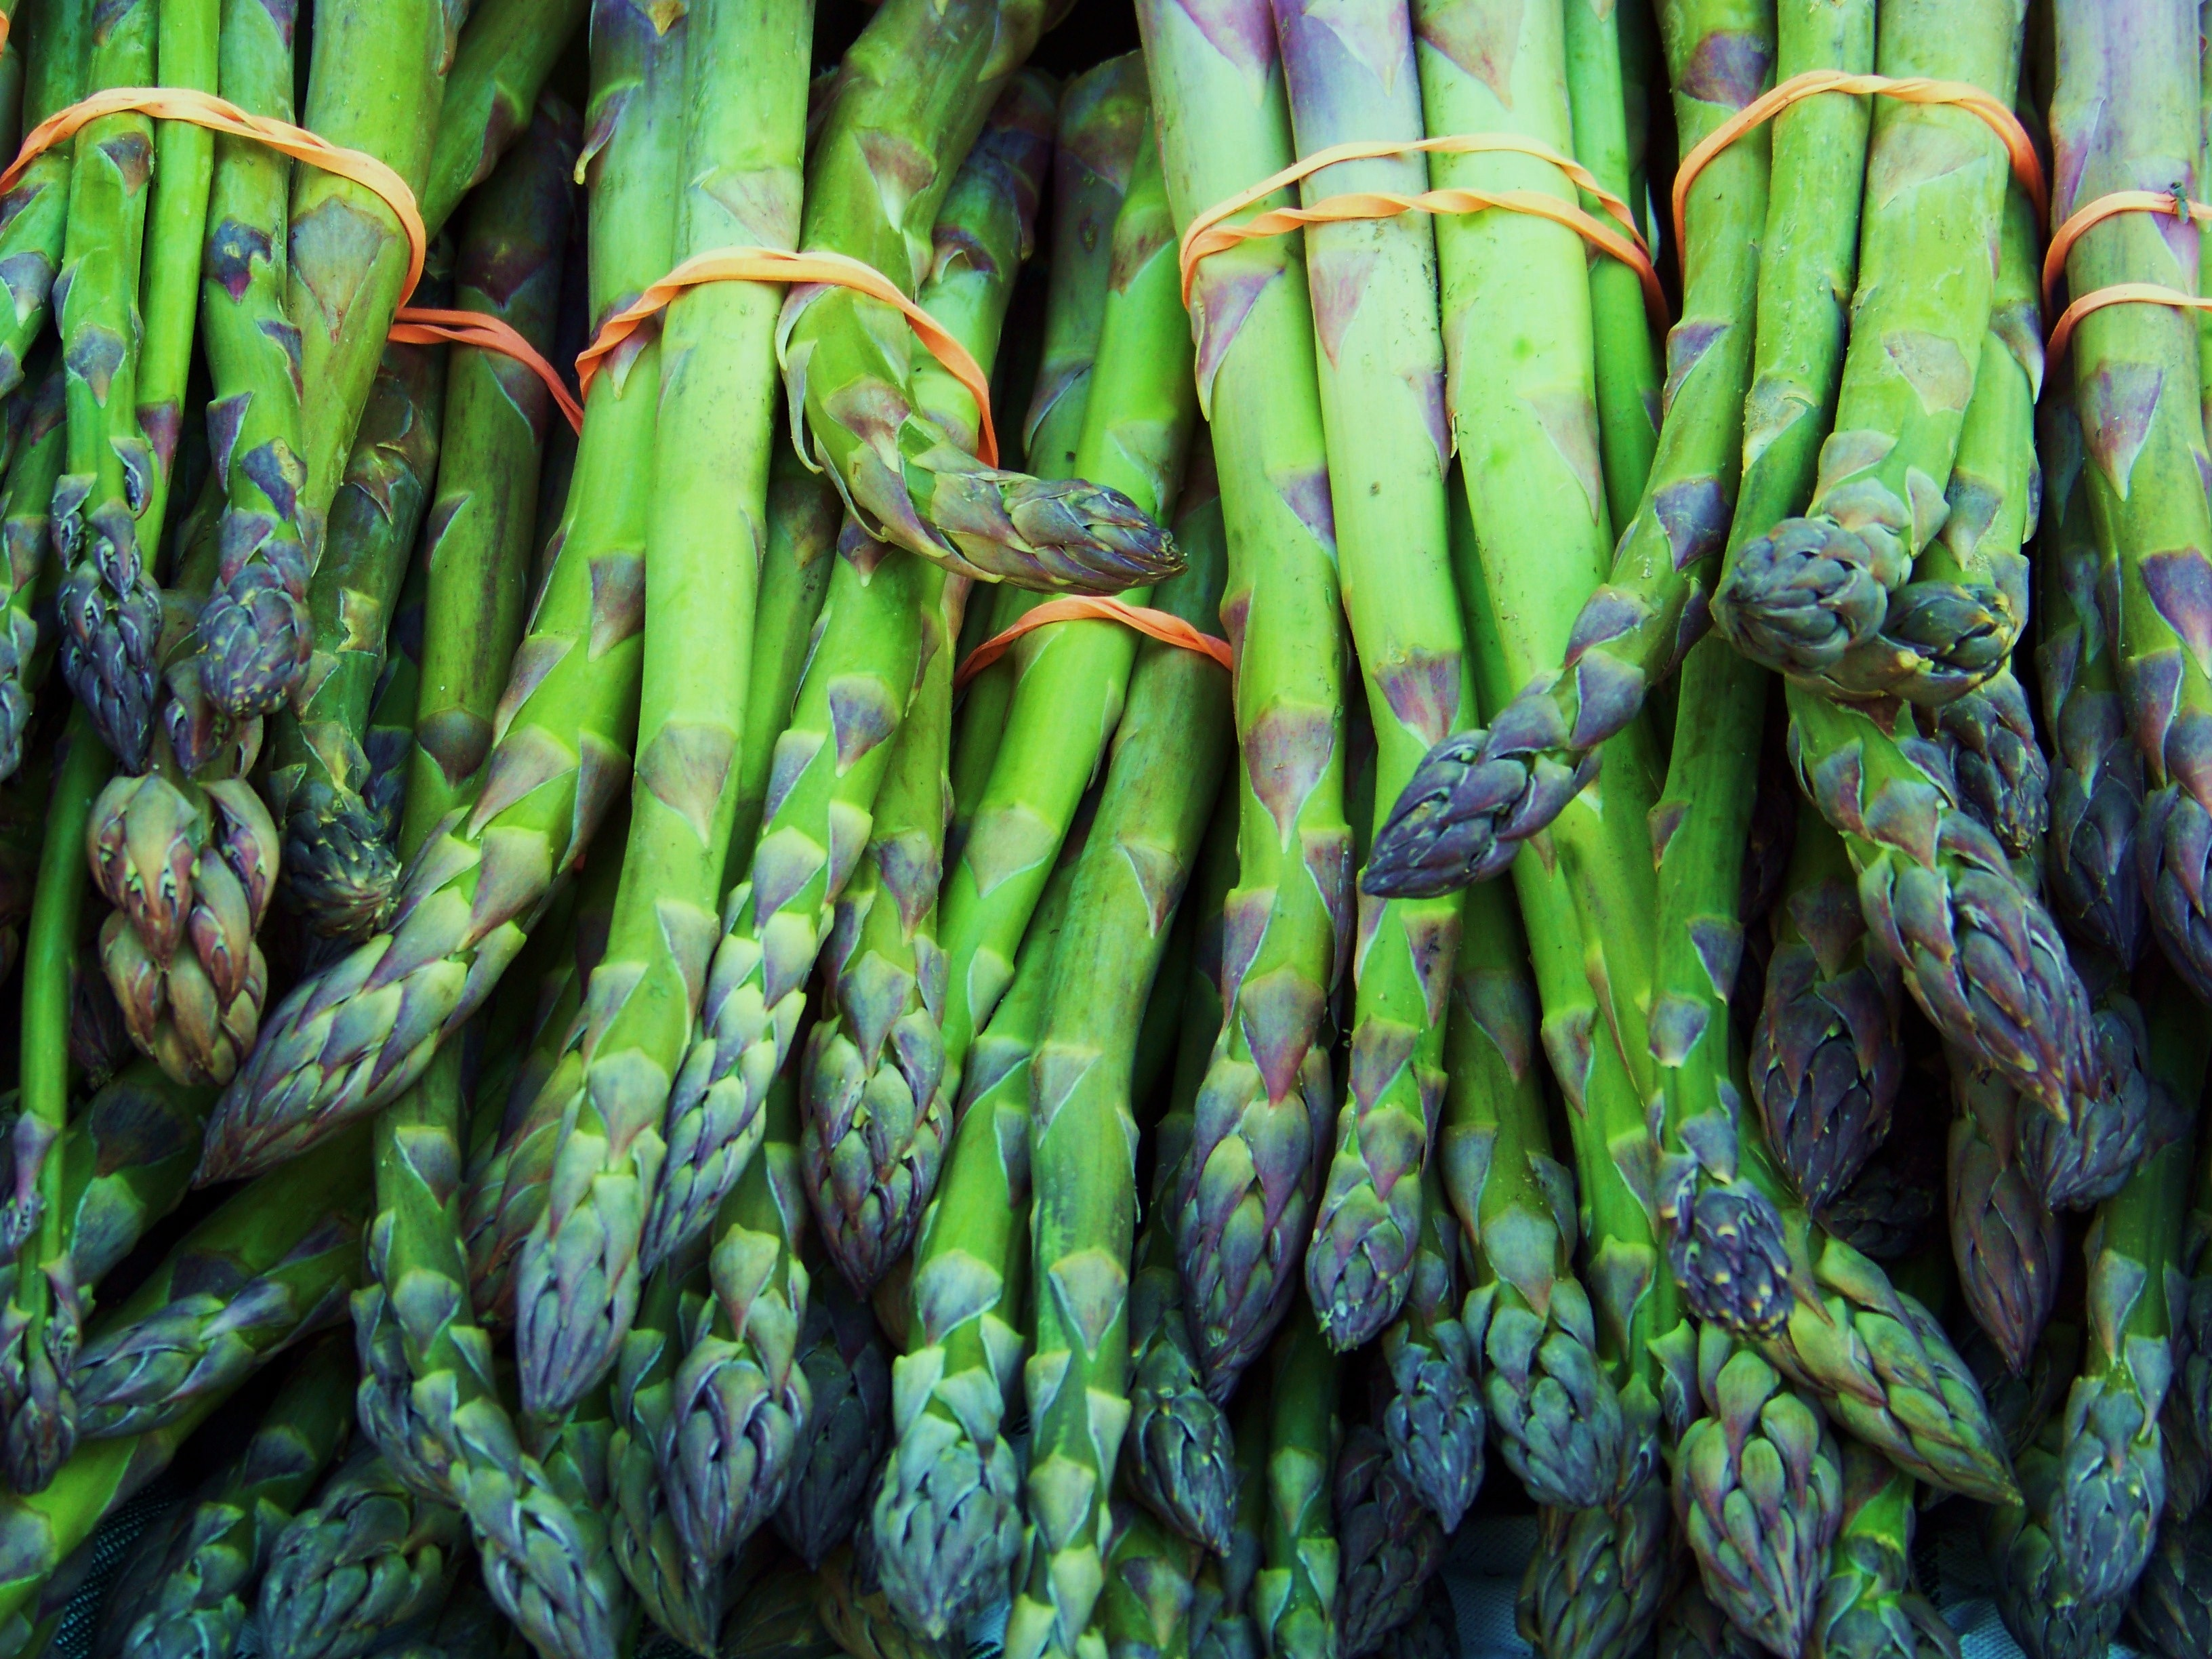 In early summer you can get nice and thick asparagus spears, which provide more snap and crunch than the thin ones.